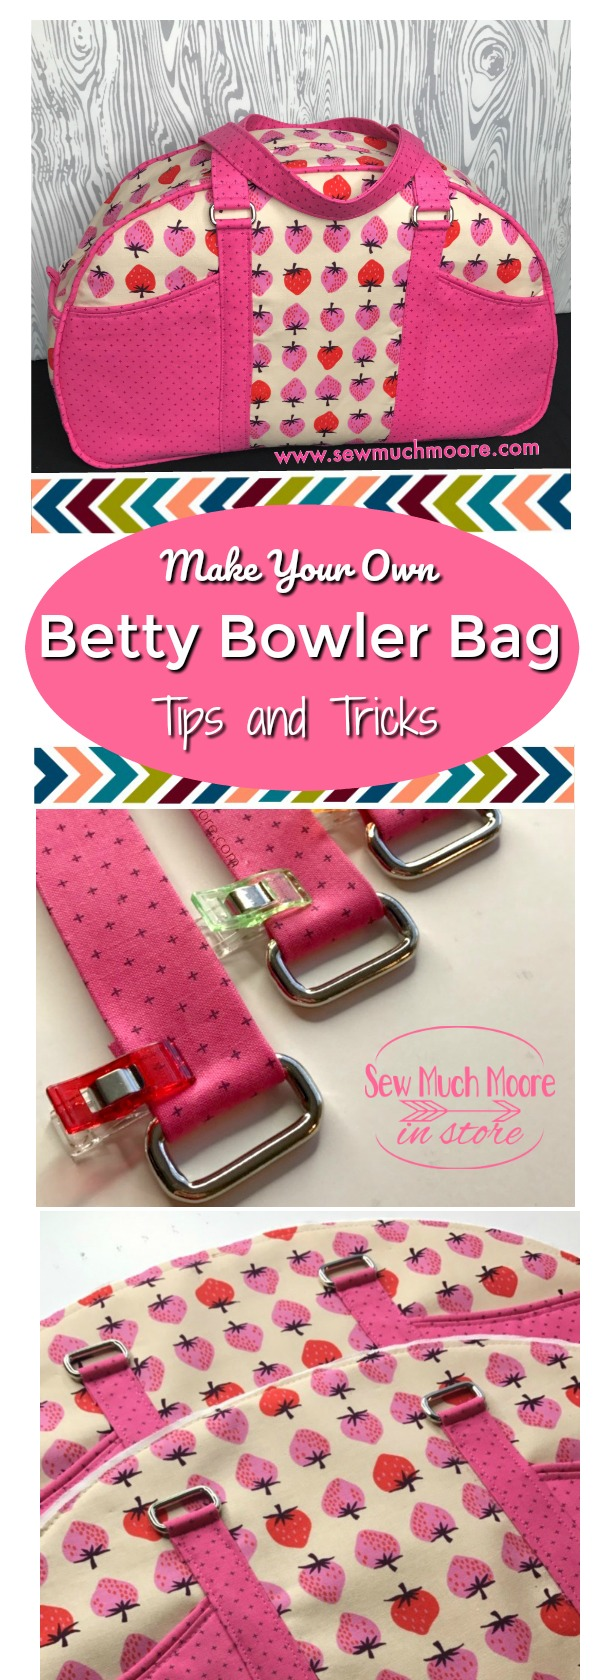 Check out these tips and tricks to make your own Betty Bowler Bag by Swoon Patterns. Video tutorial and pattern info #sewing #bagmaking #bettybowlerbag #sewingtutorials #sewing #tutorials #luggage